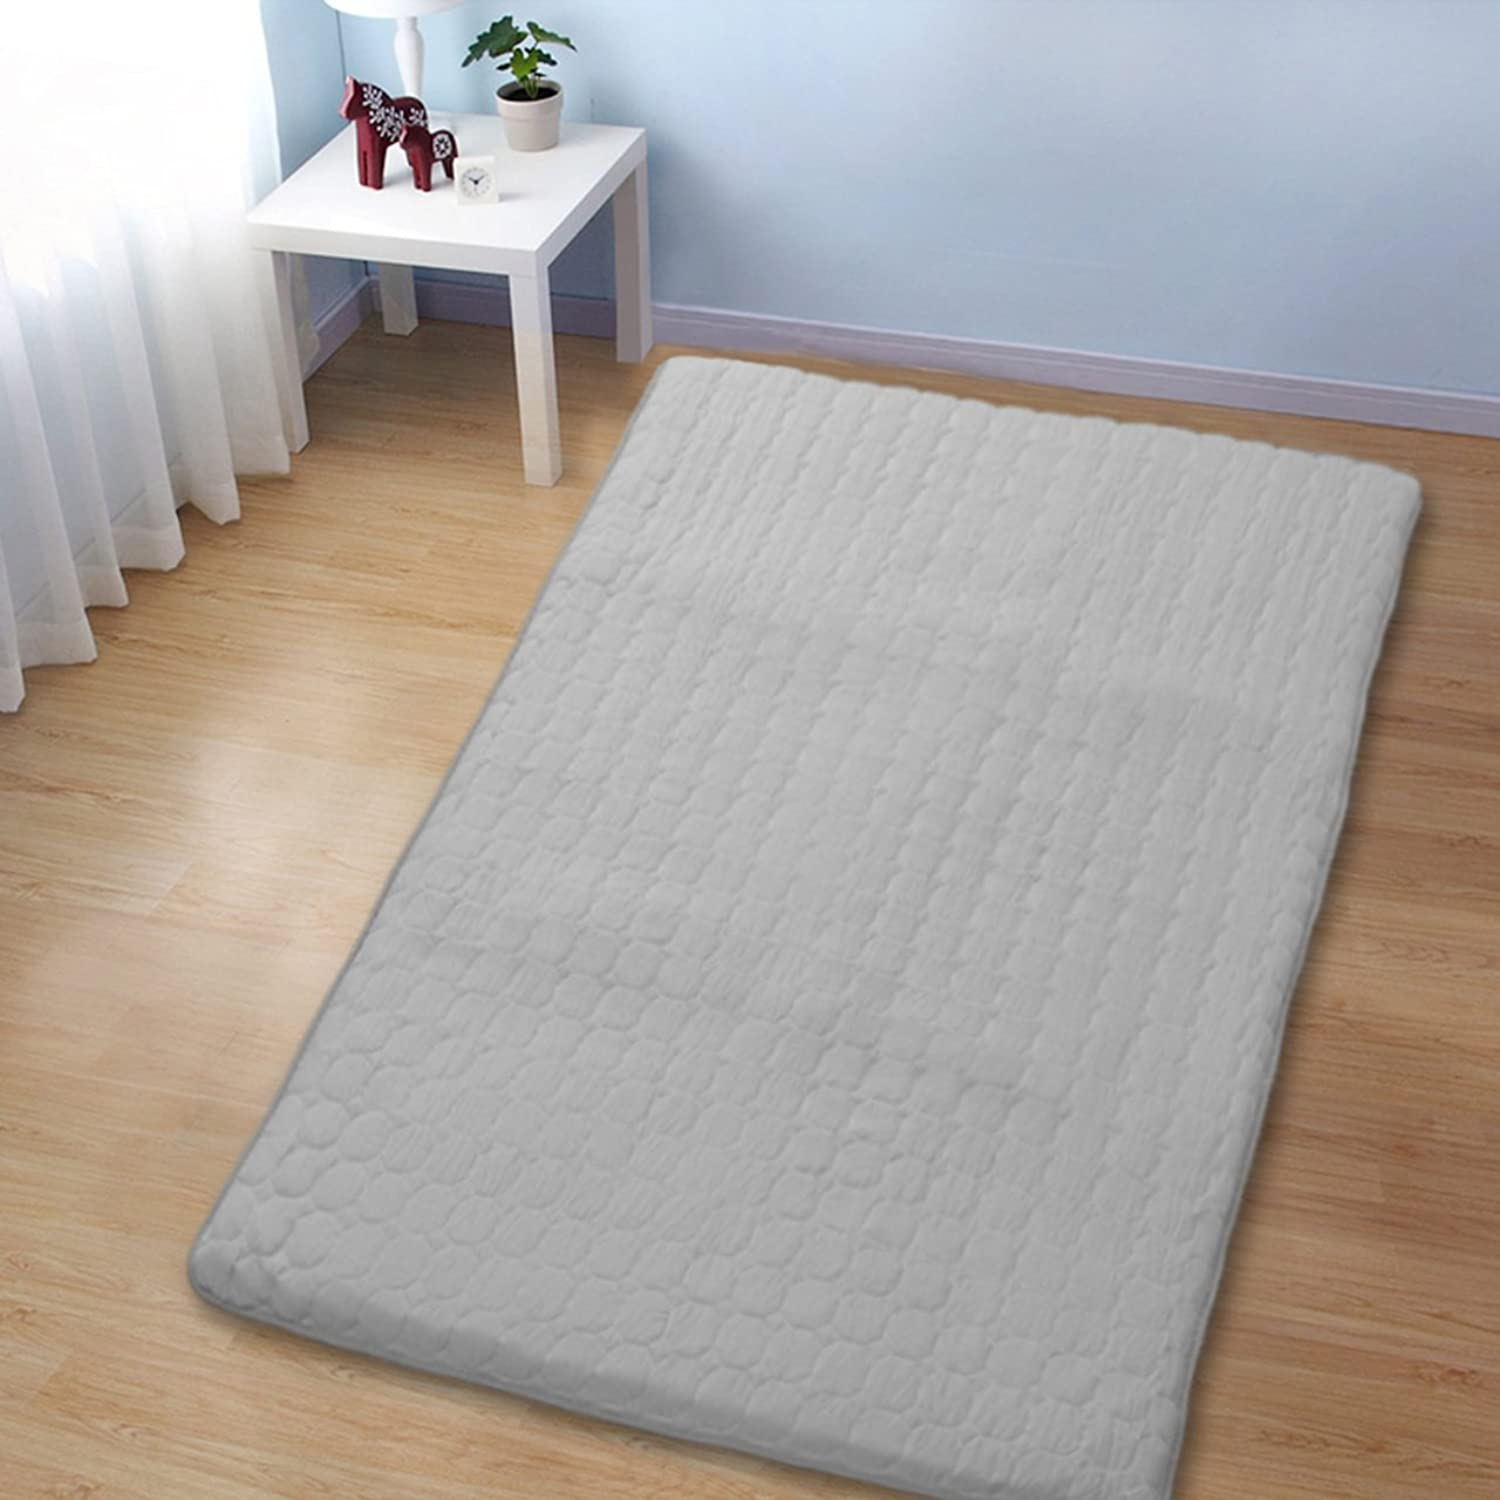 Non-Slip Tatami Floor mat,Foldable Cushion mats Quilted Bed Predection pad Dorm Portable Sleeping pad Washable-B 90x200cm(35x79inch)